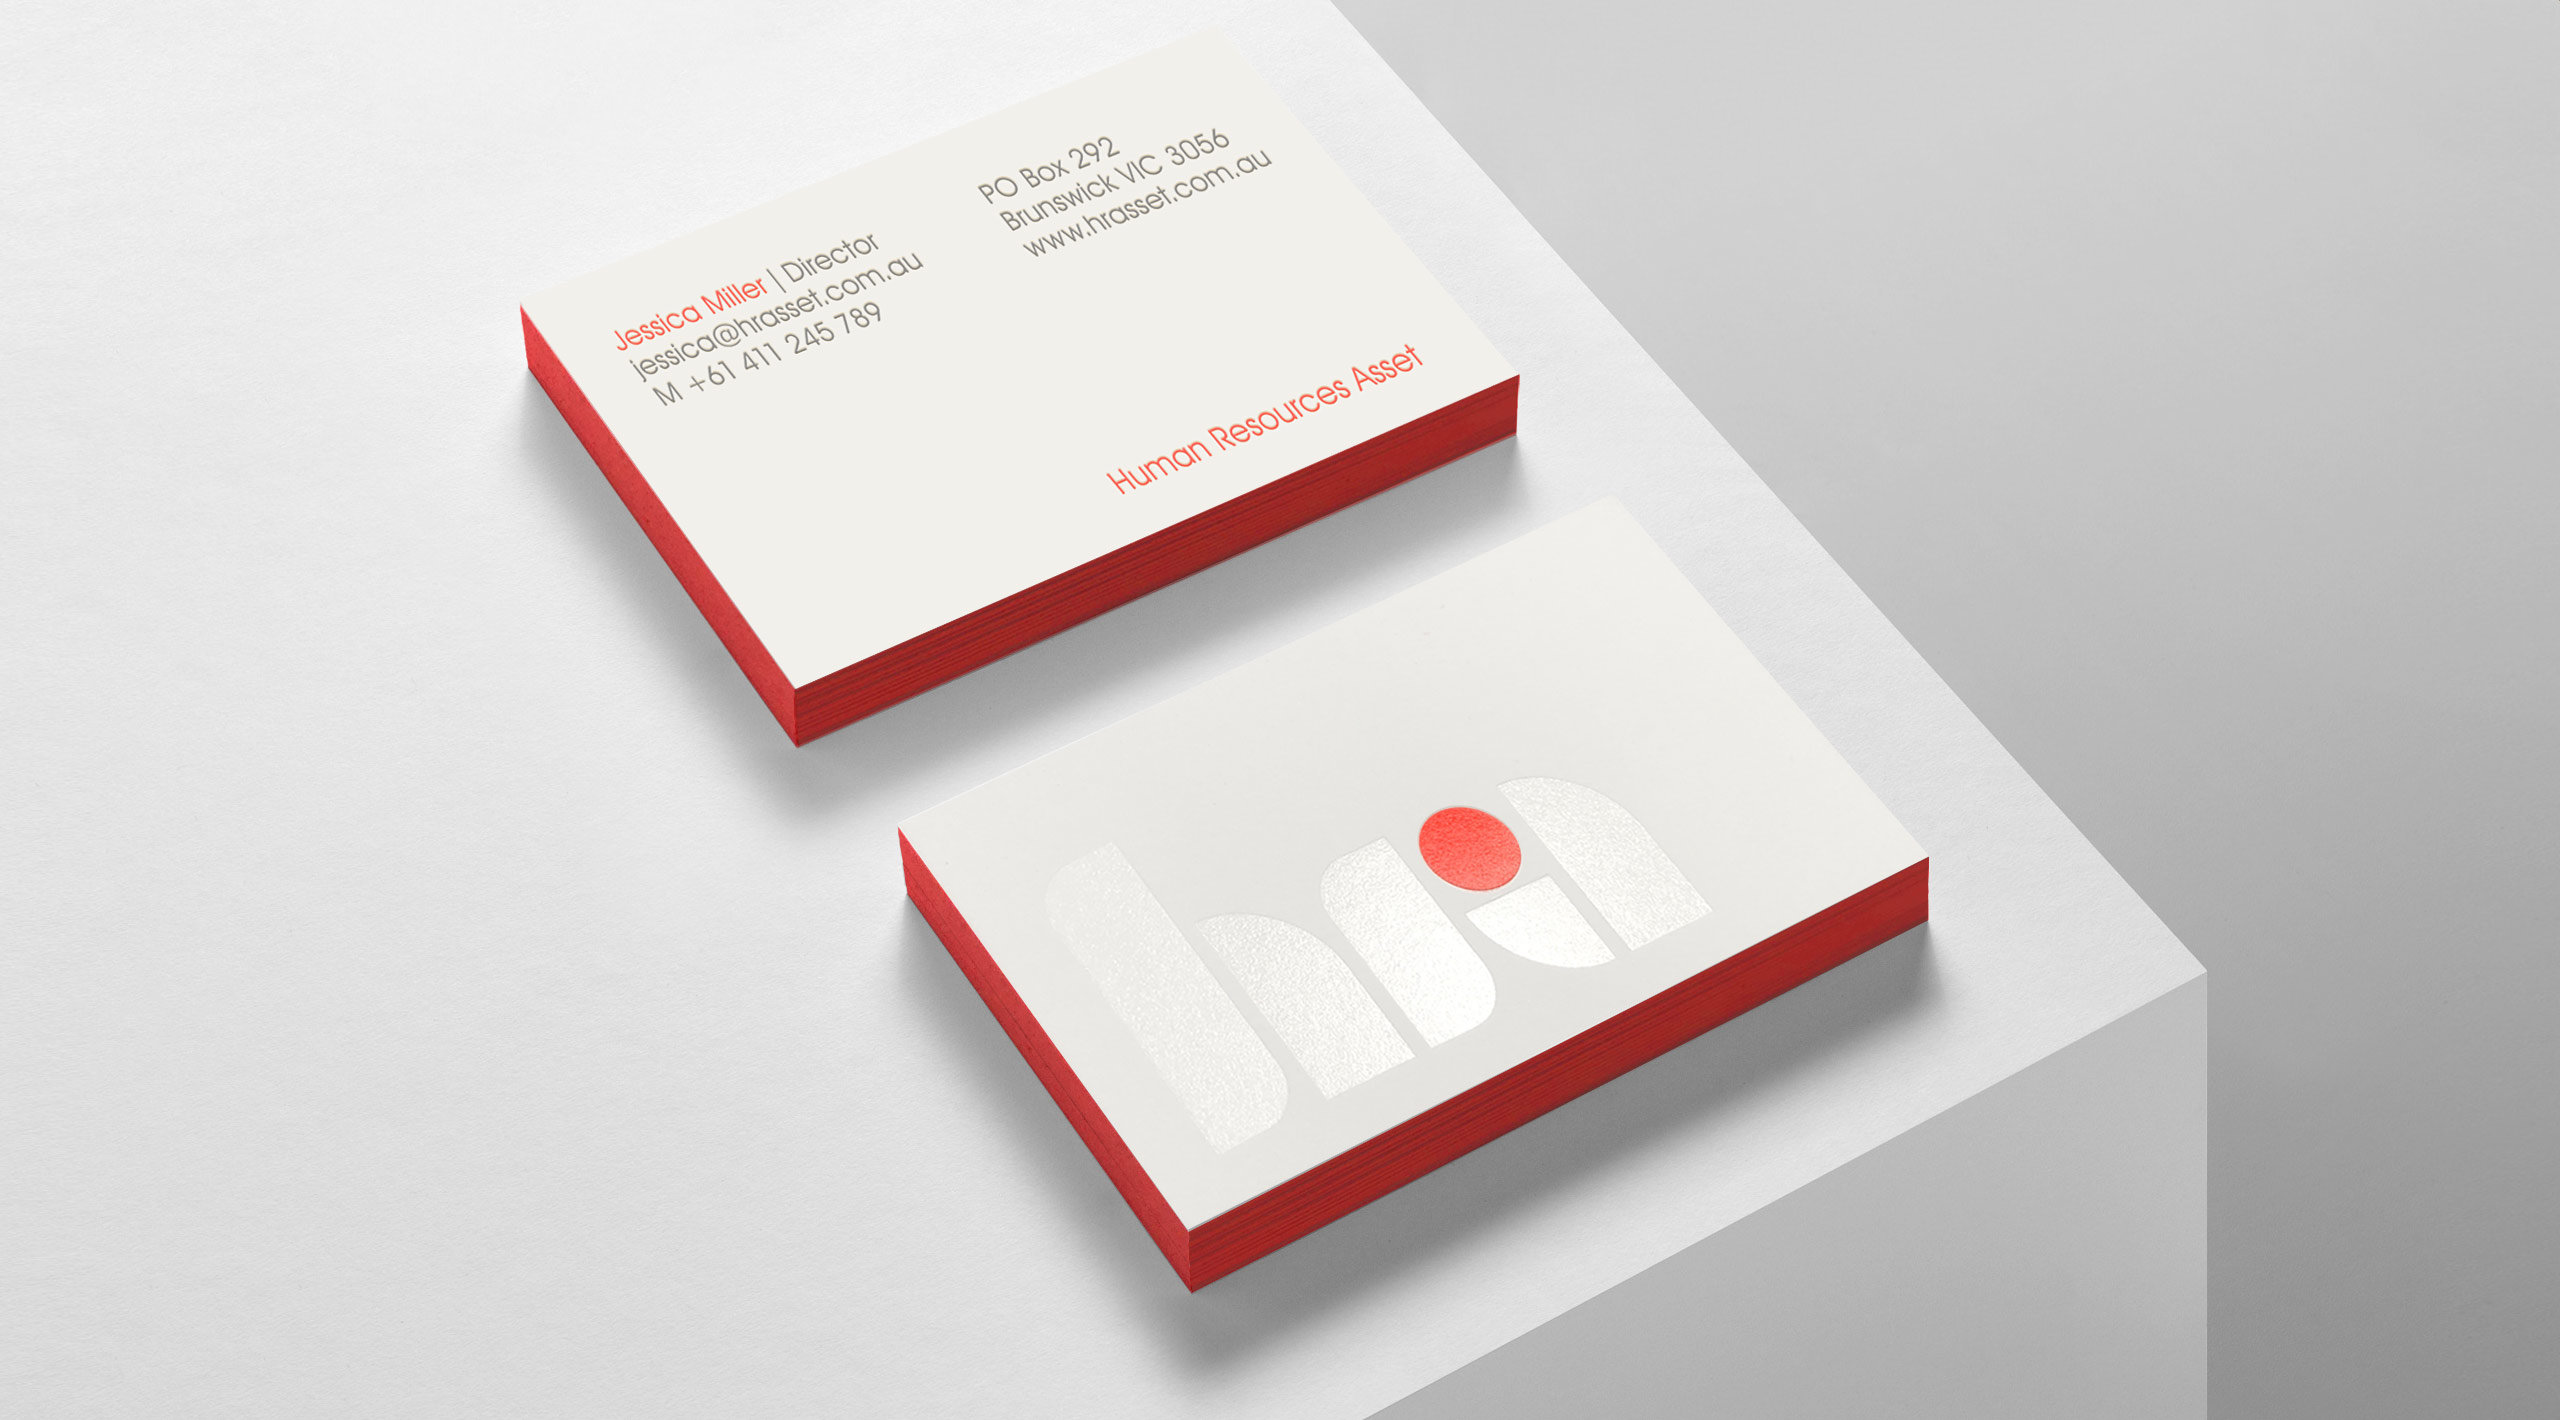 hr asset business cards on ledge